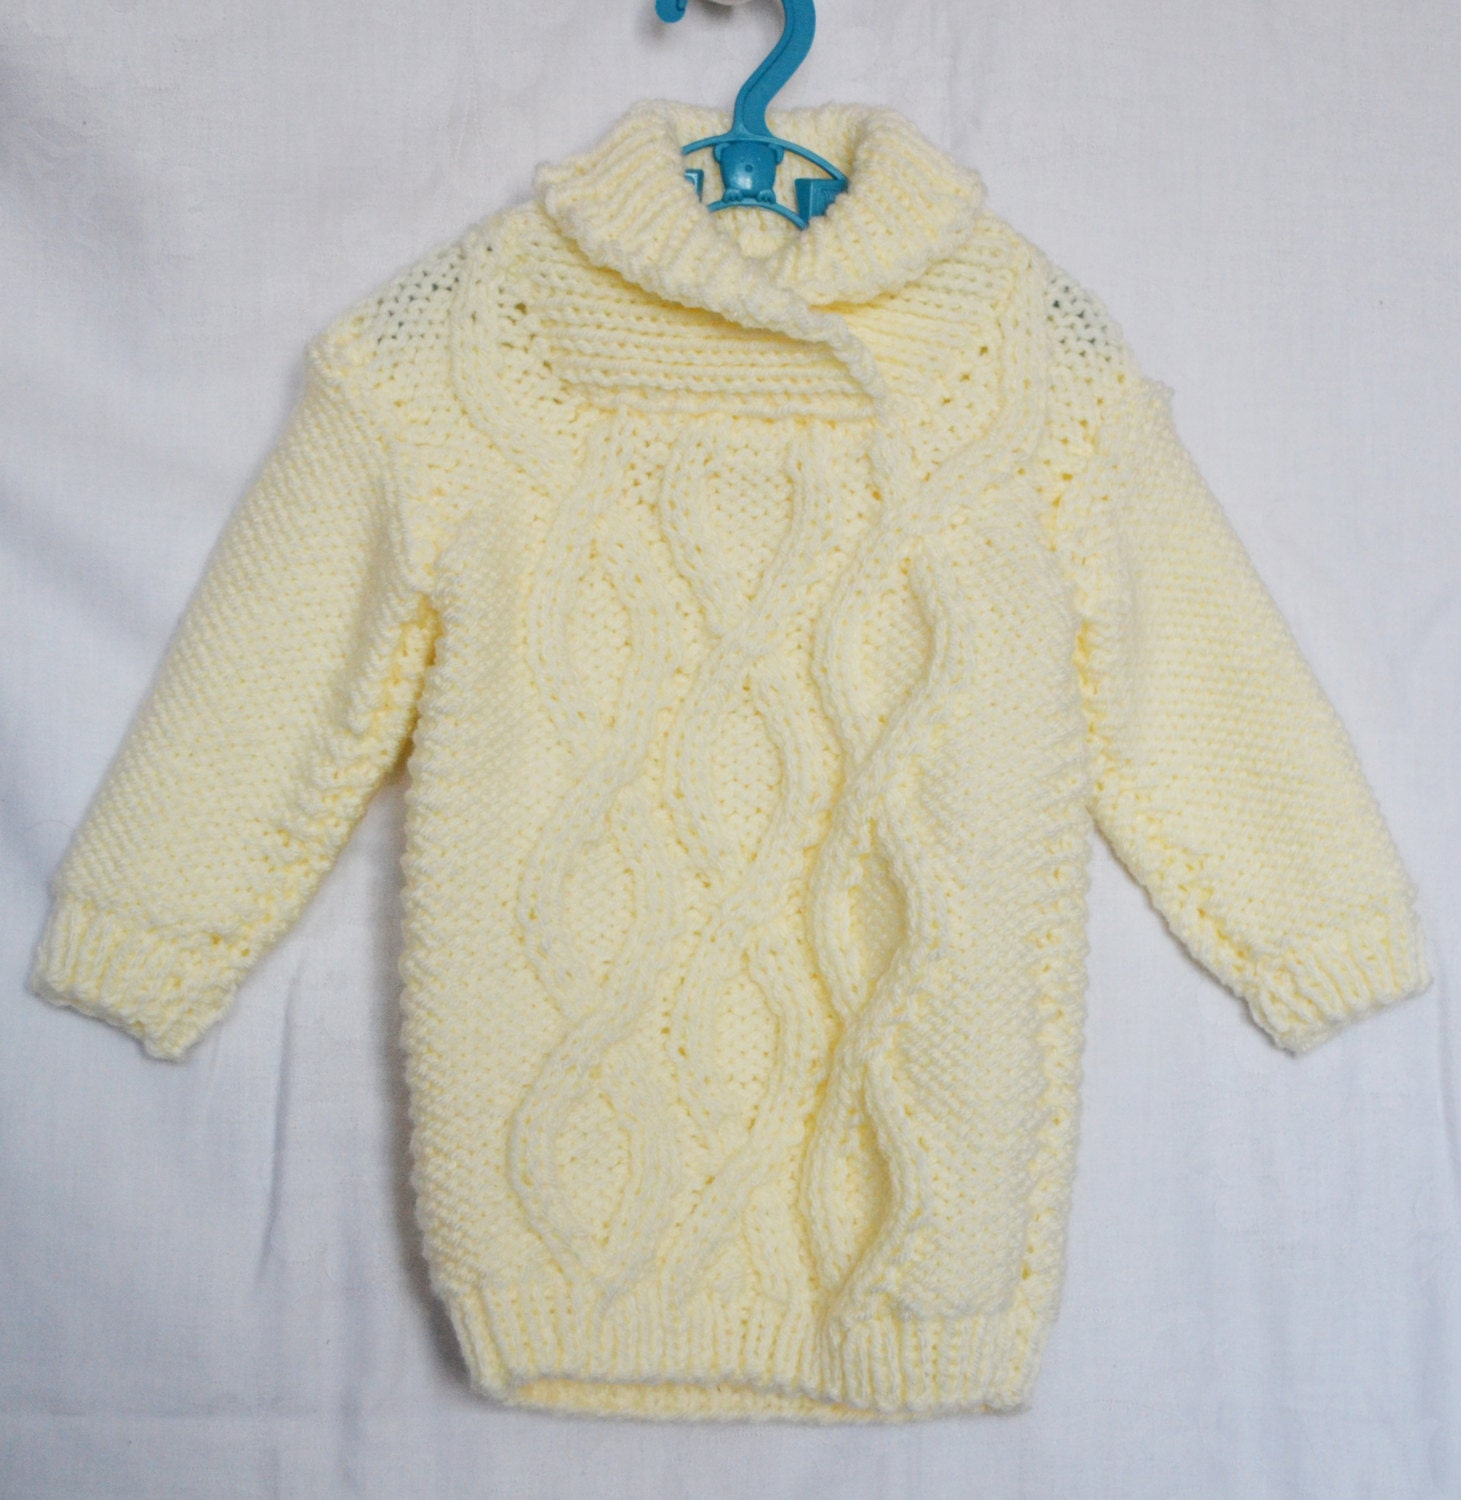 Knitting Pattern Baby Sweater Chunky Yarn : Hand Knitted Baby Cable Sweater Dress Ivory Baby Chunky Yarn